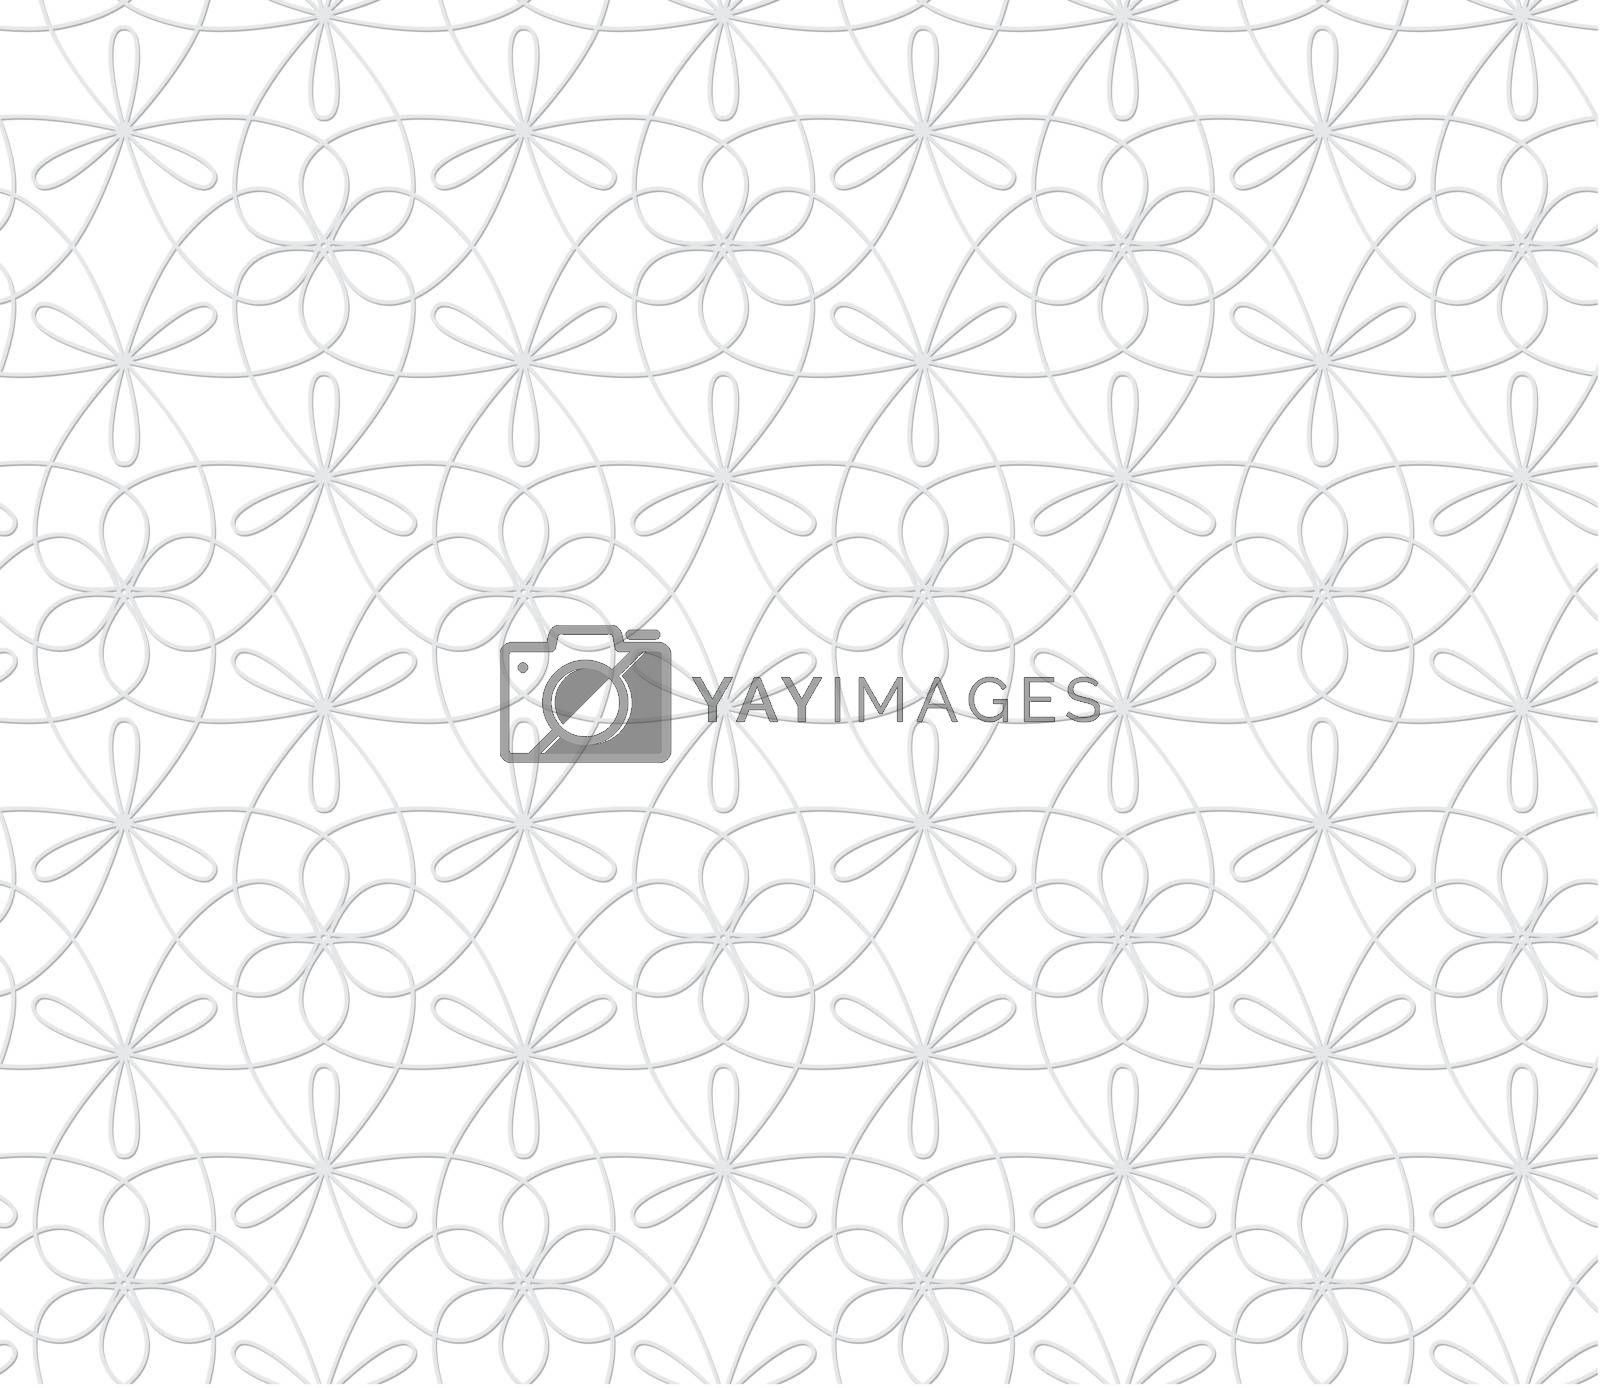 Monochrome abstract background - silver curlicues